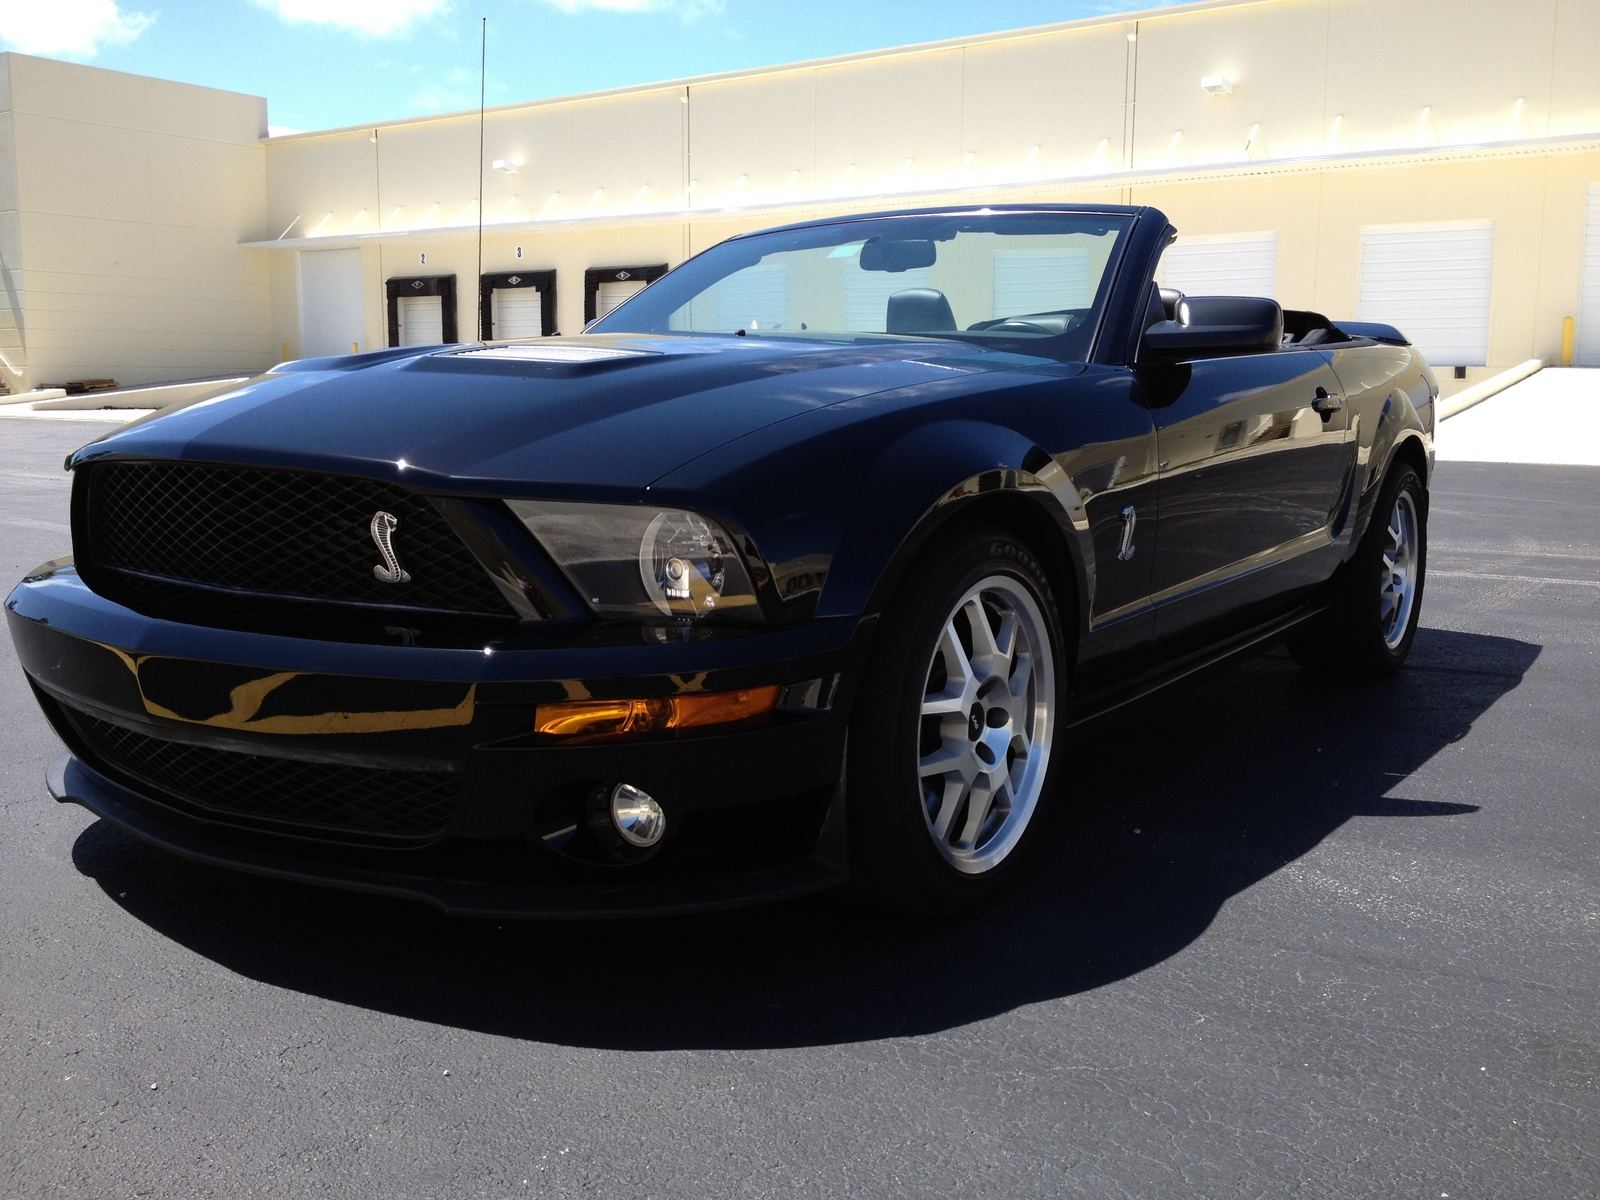 2008 Ford Shelby GT500 - Pictures - CarGurus